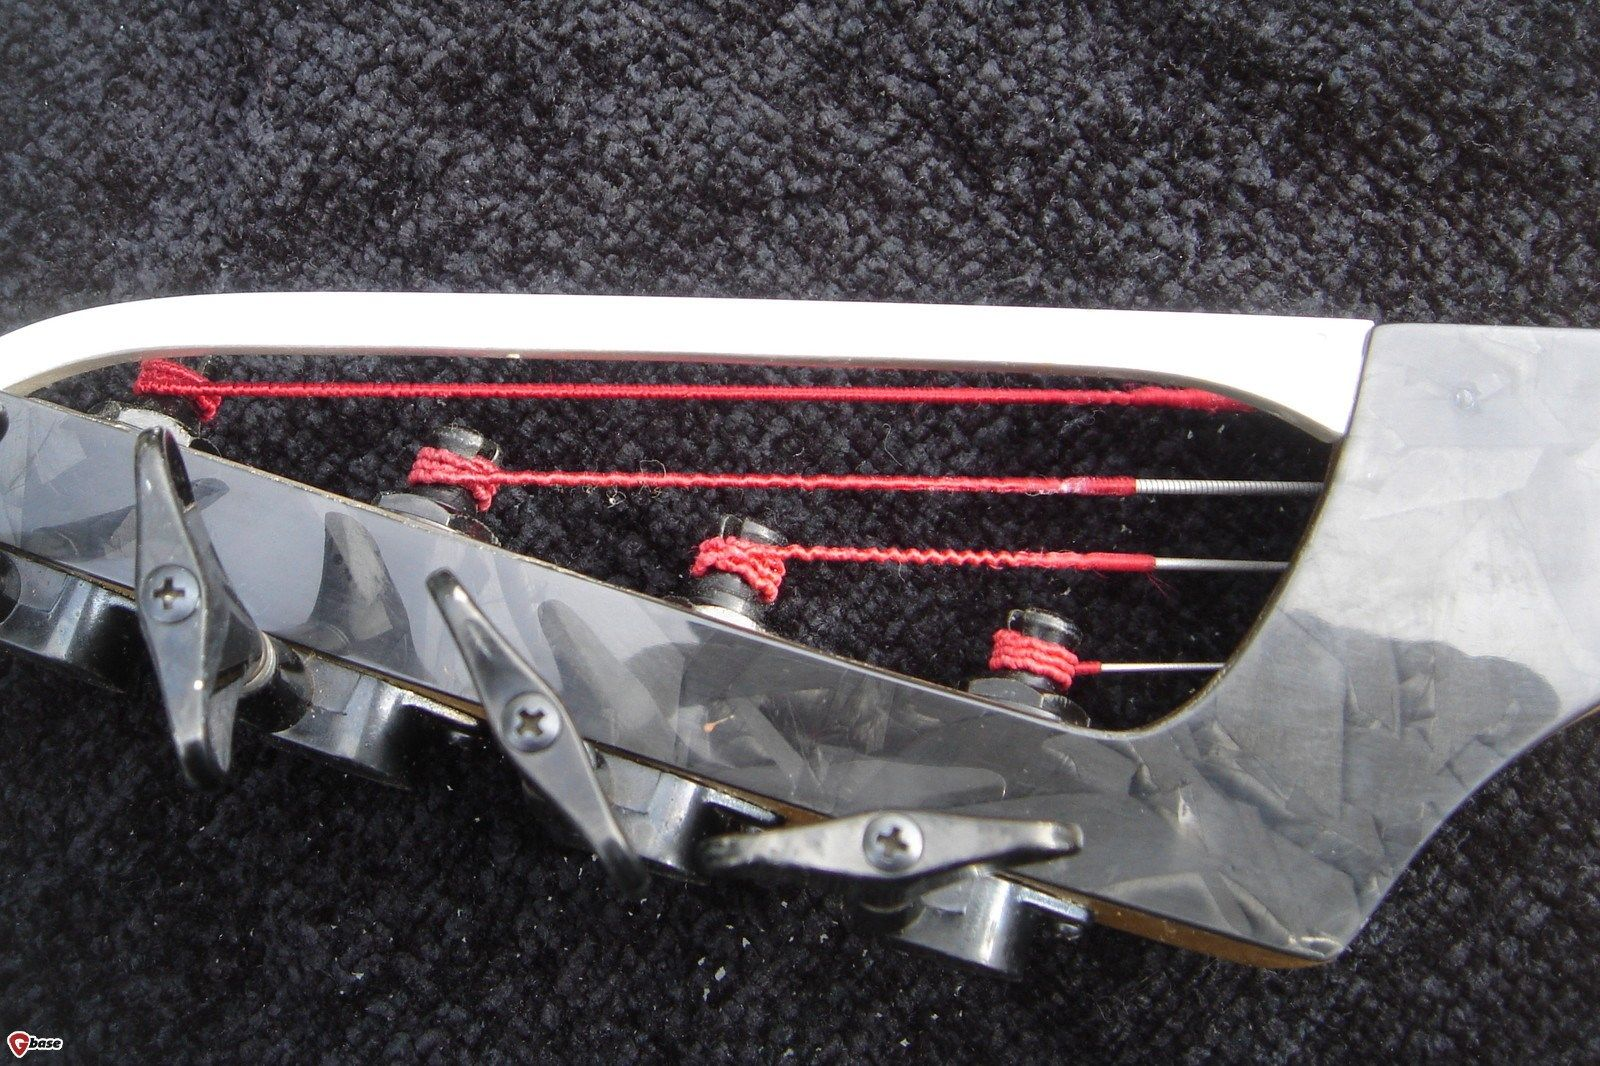 1993 ZETA Prism bass headstock